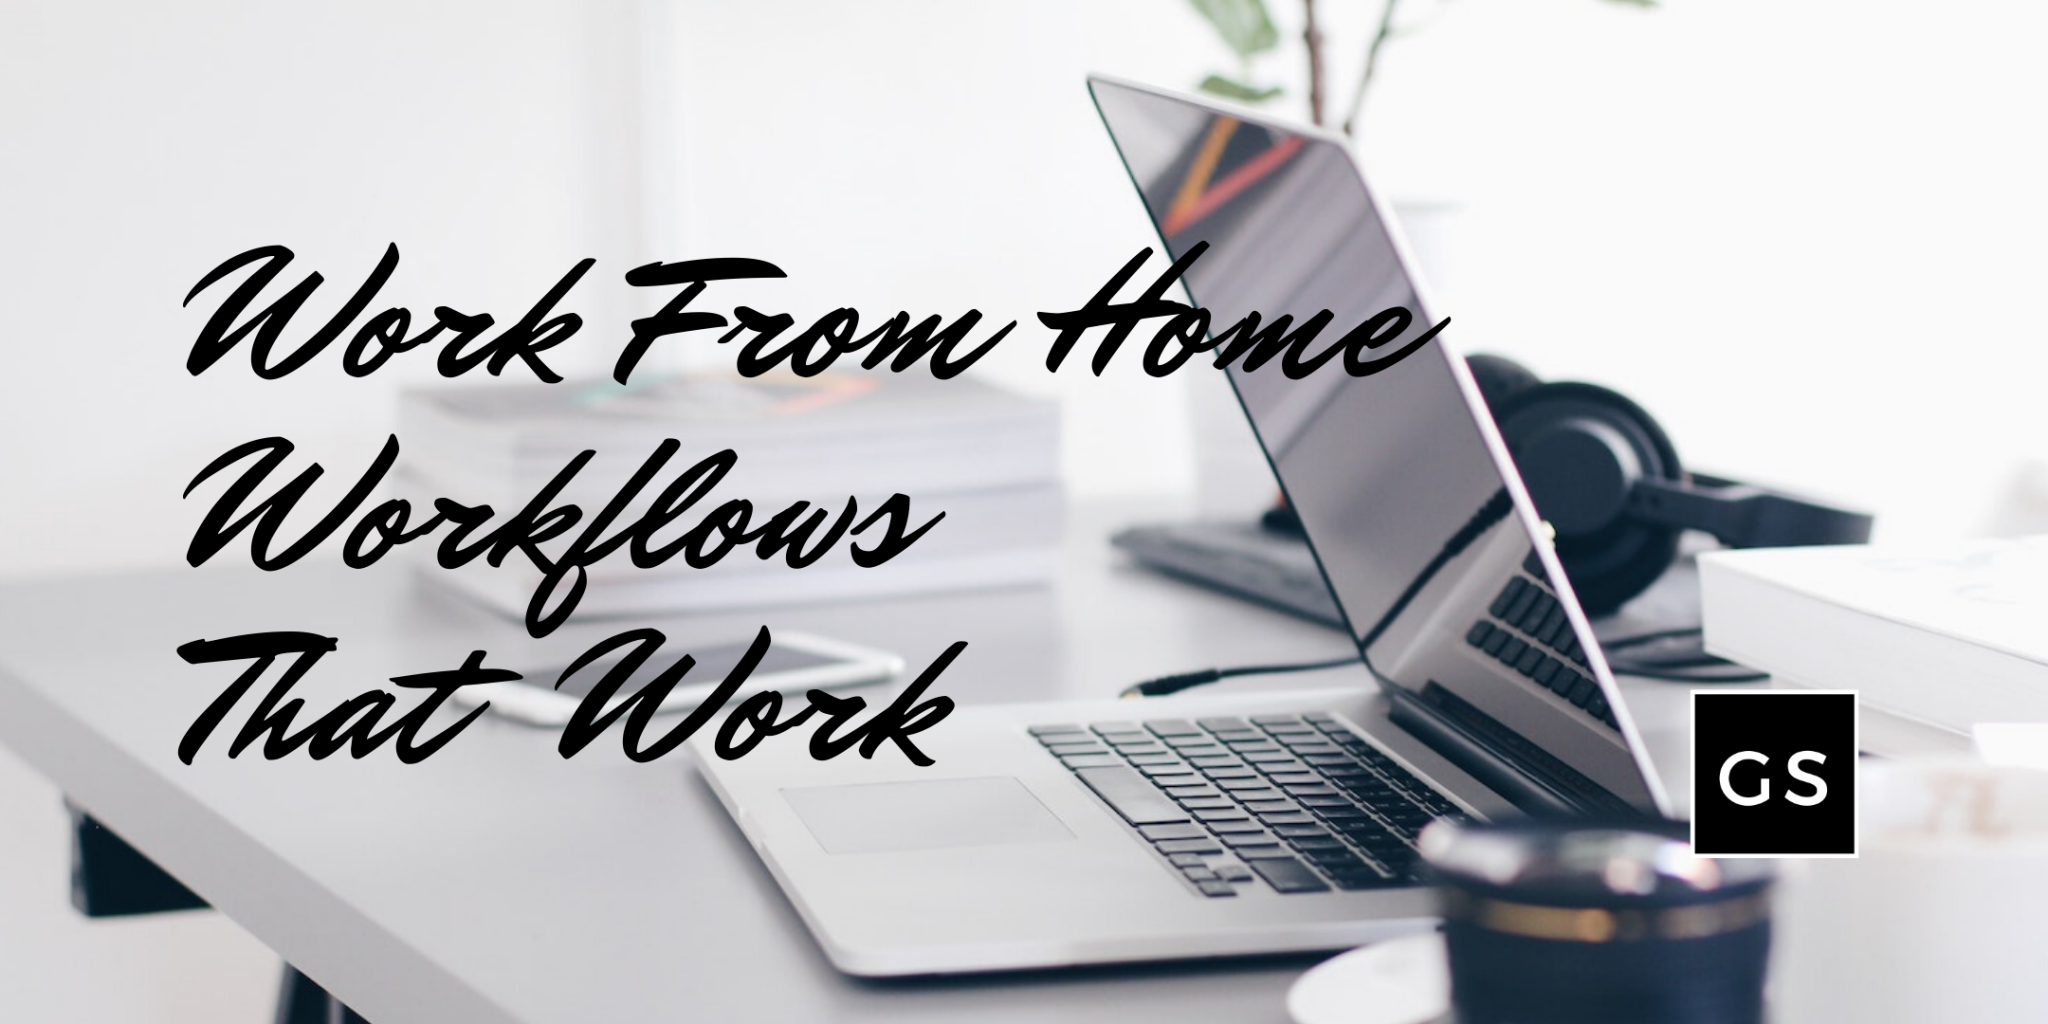 Work from Home Workflows Workshops May 2020